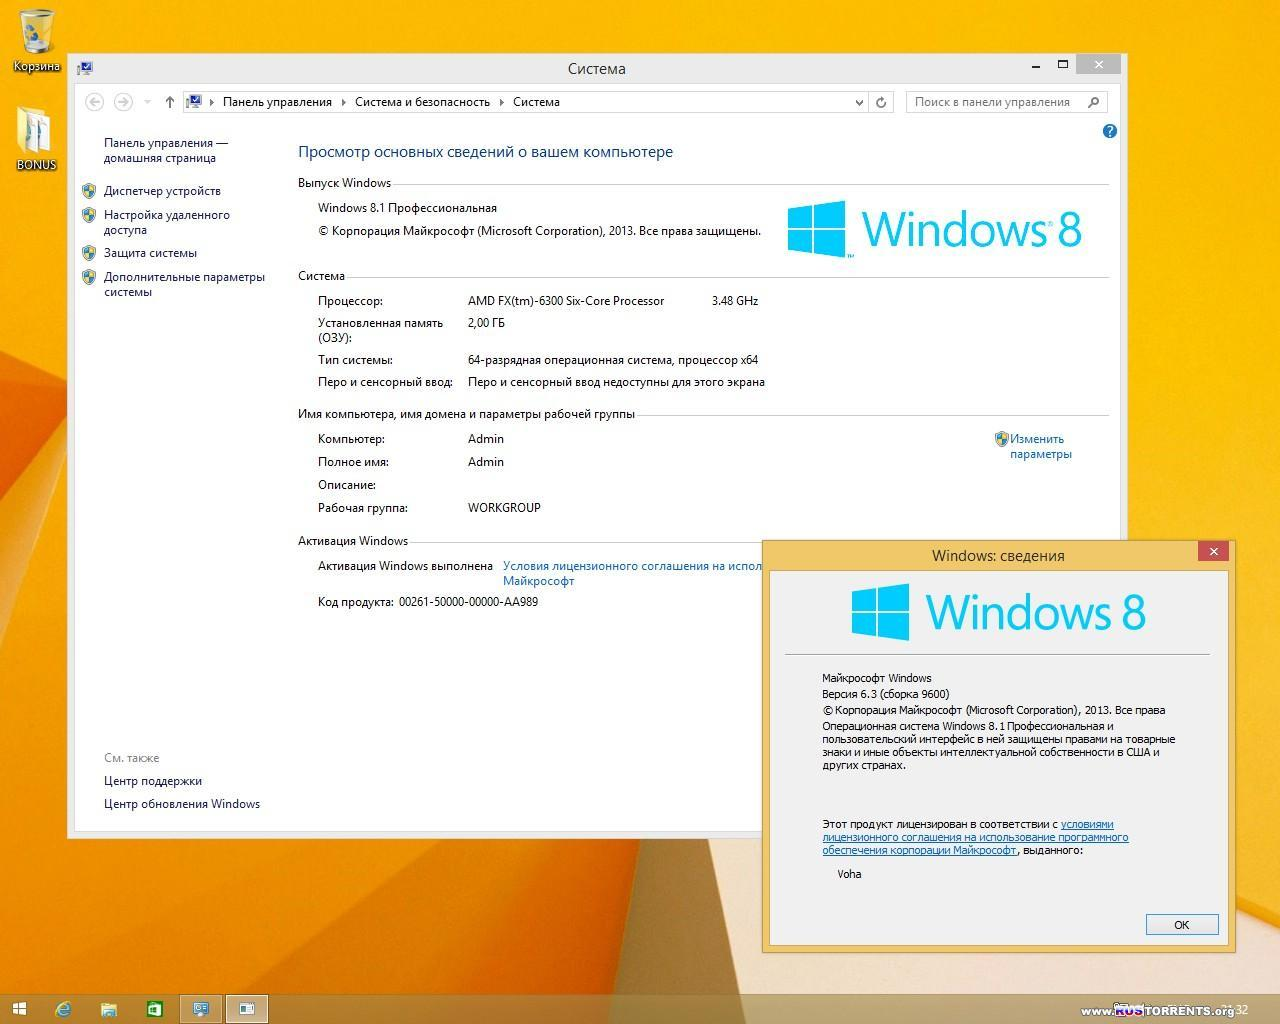 Windows 8.1 Professional VL х86/х64 with Update 2DVD by Andreyonohov 31.07.2014 RUS